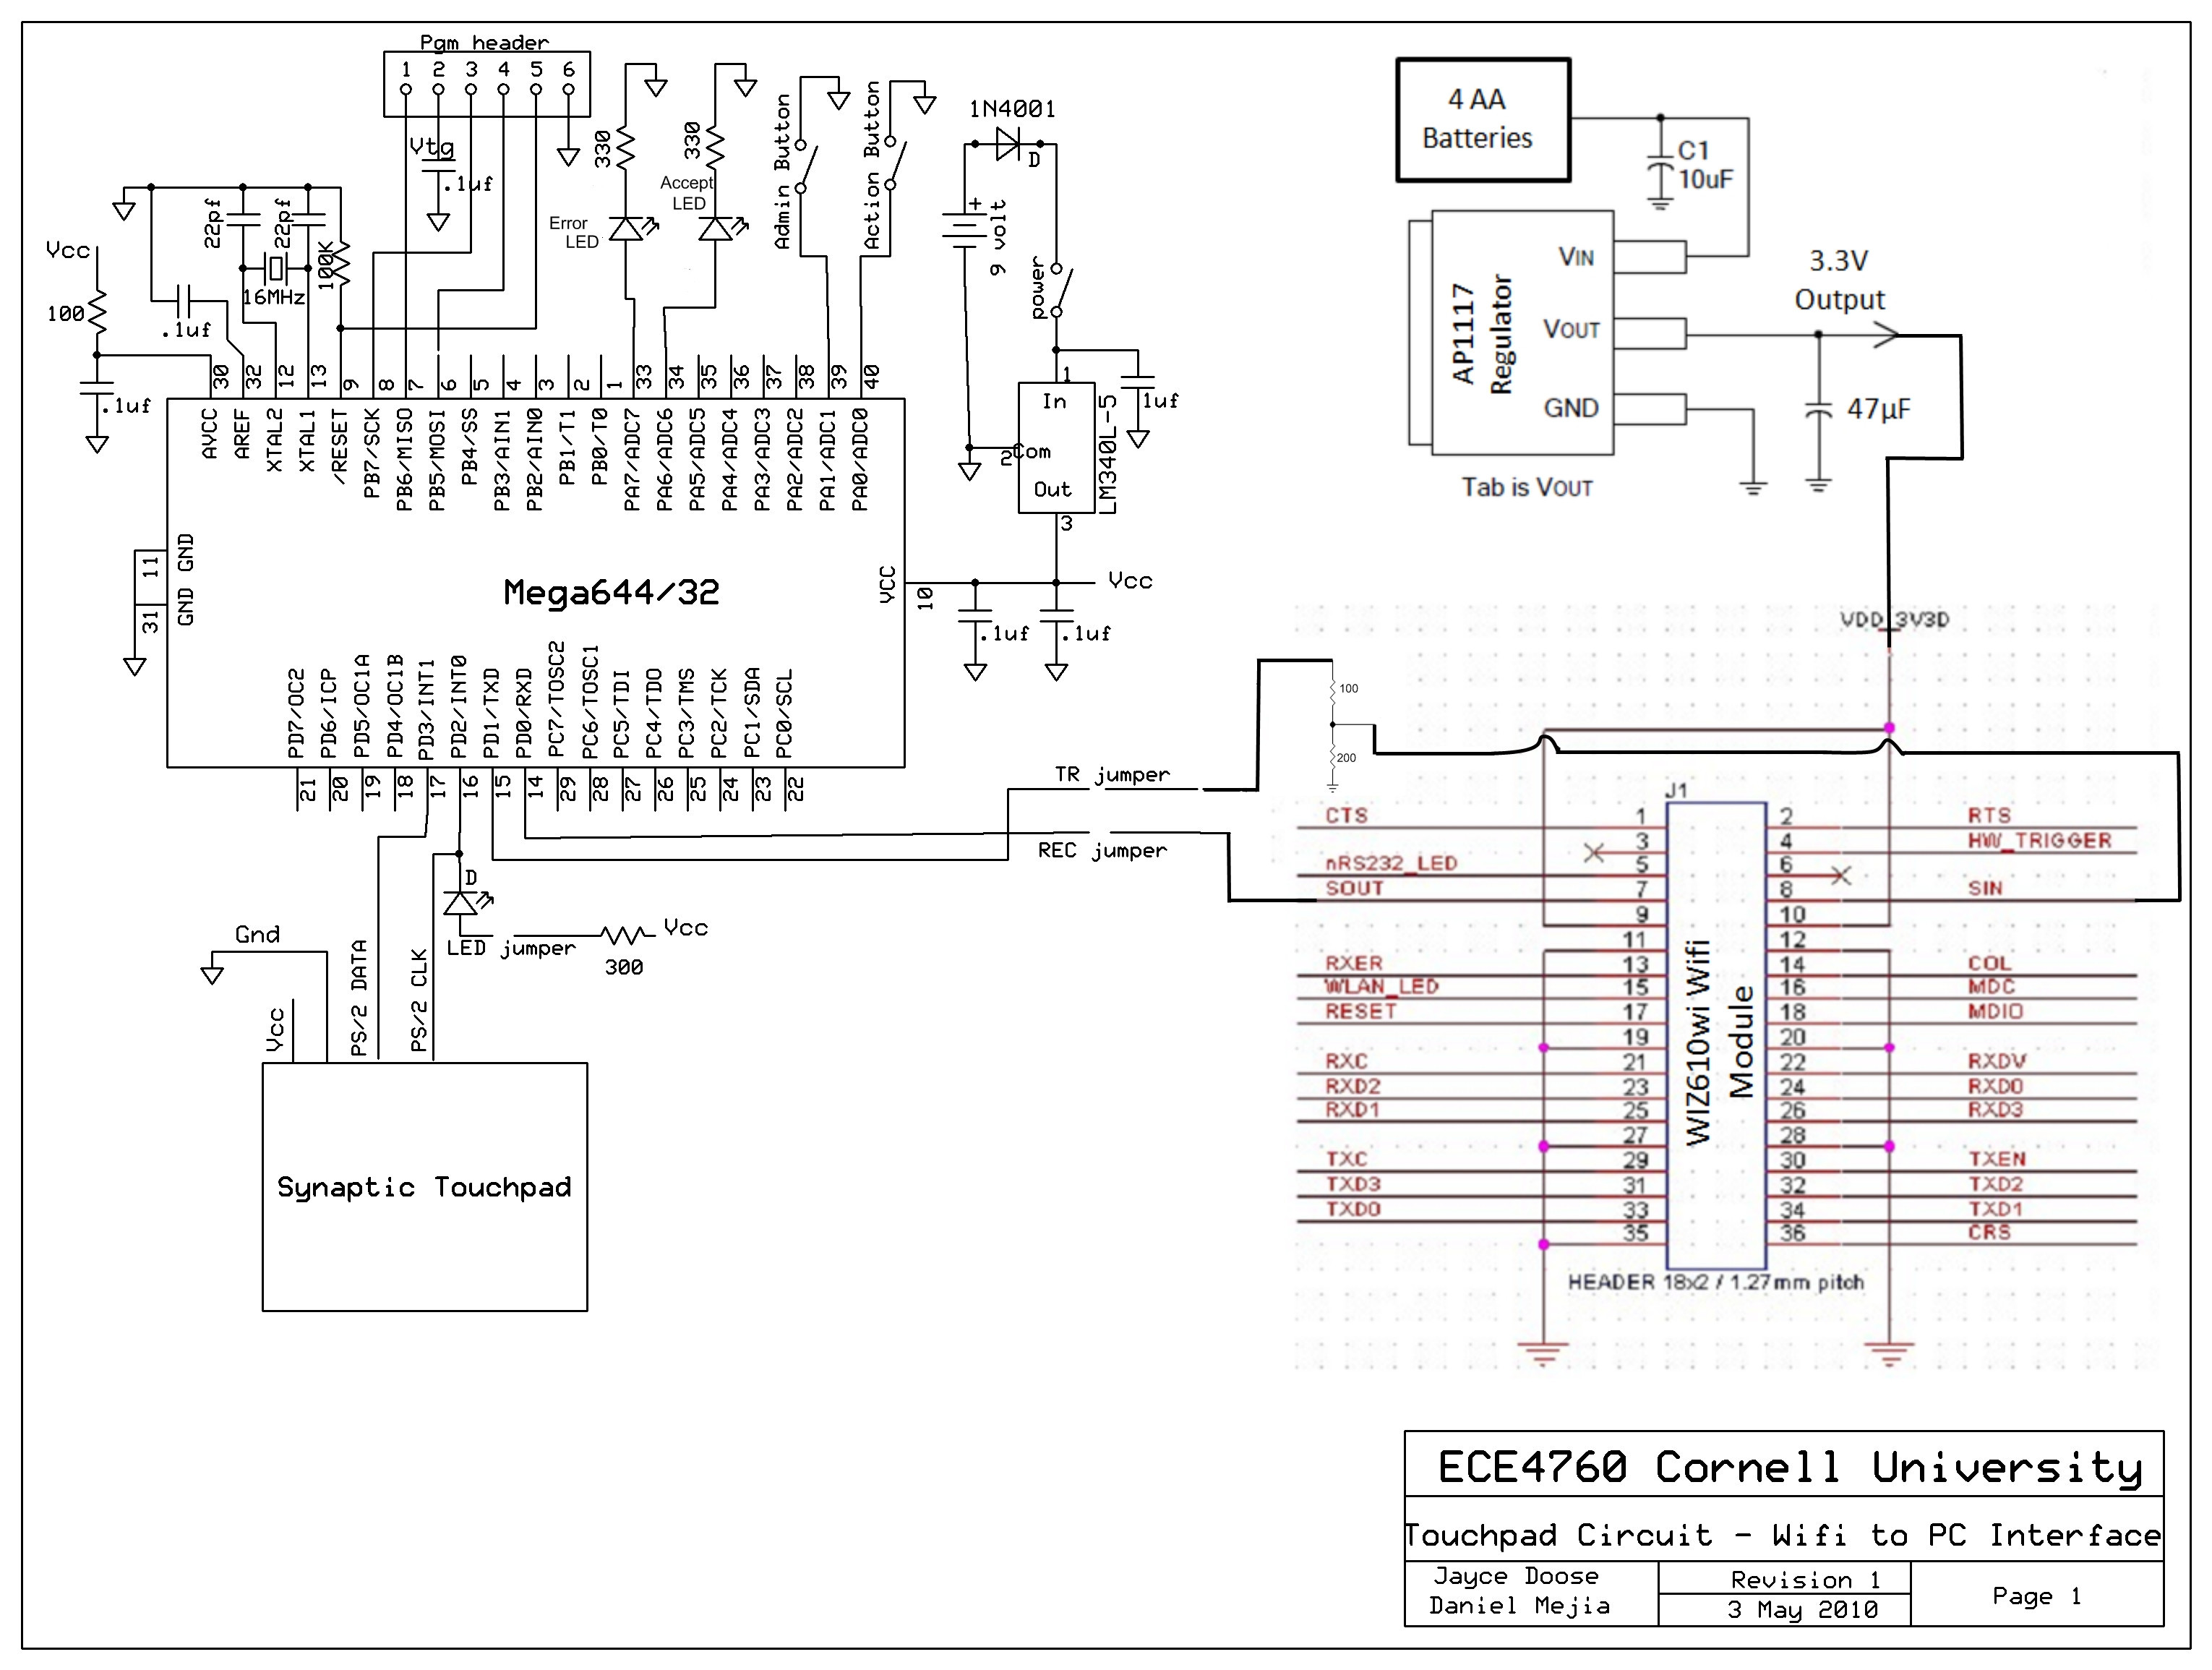 wiring diagram visio 2010 gesture based touchpad security system  gesture based touchpad security system